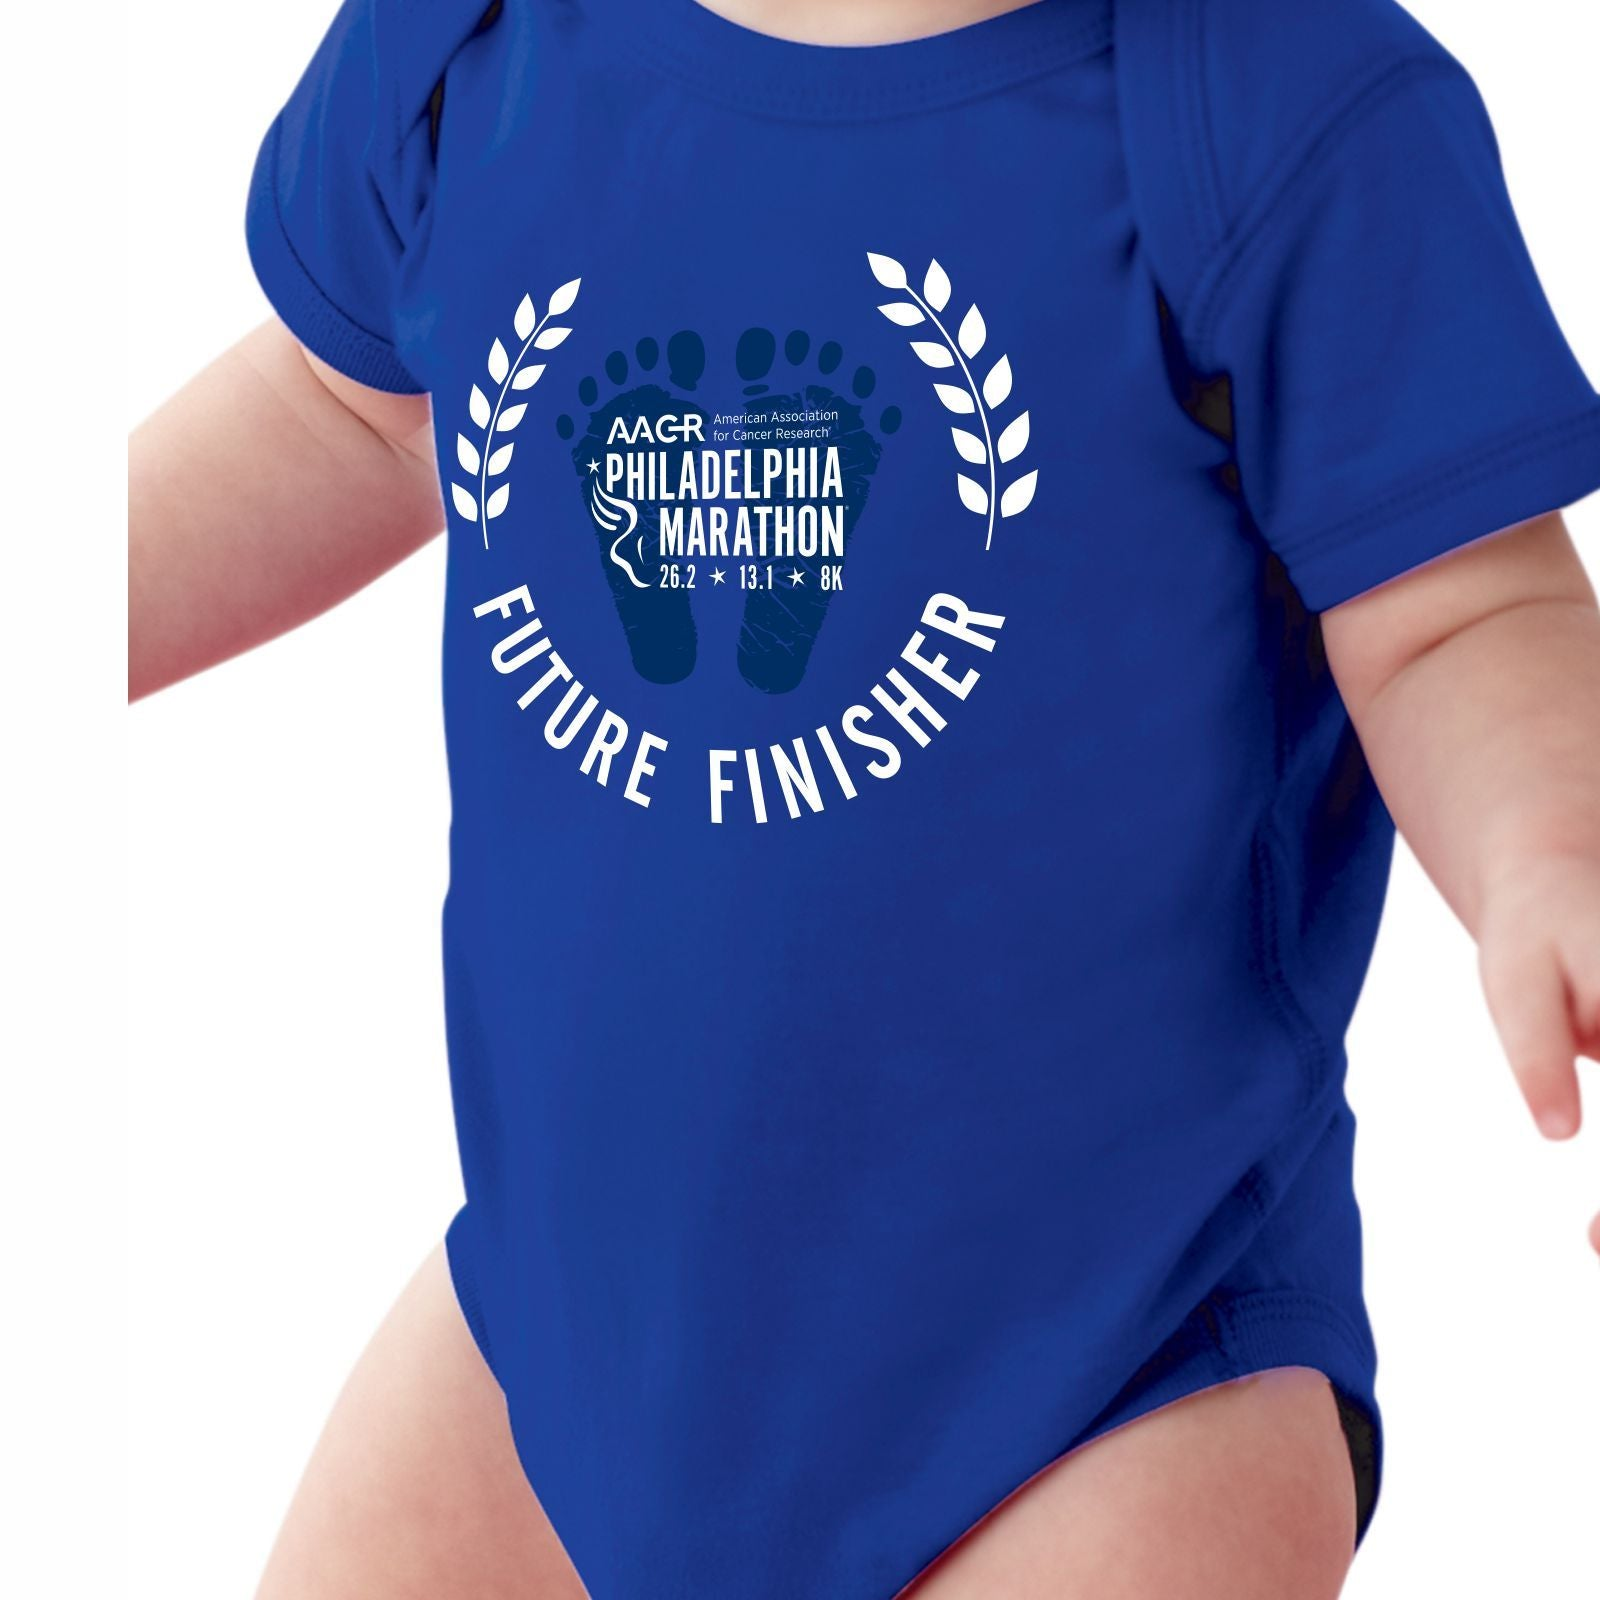 AACR Philadelphia Marathon 'Future Finisher' Infant SS Cotton Onesie - Vintage Royal